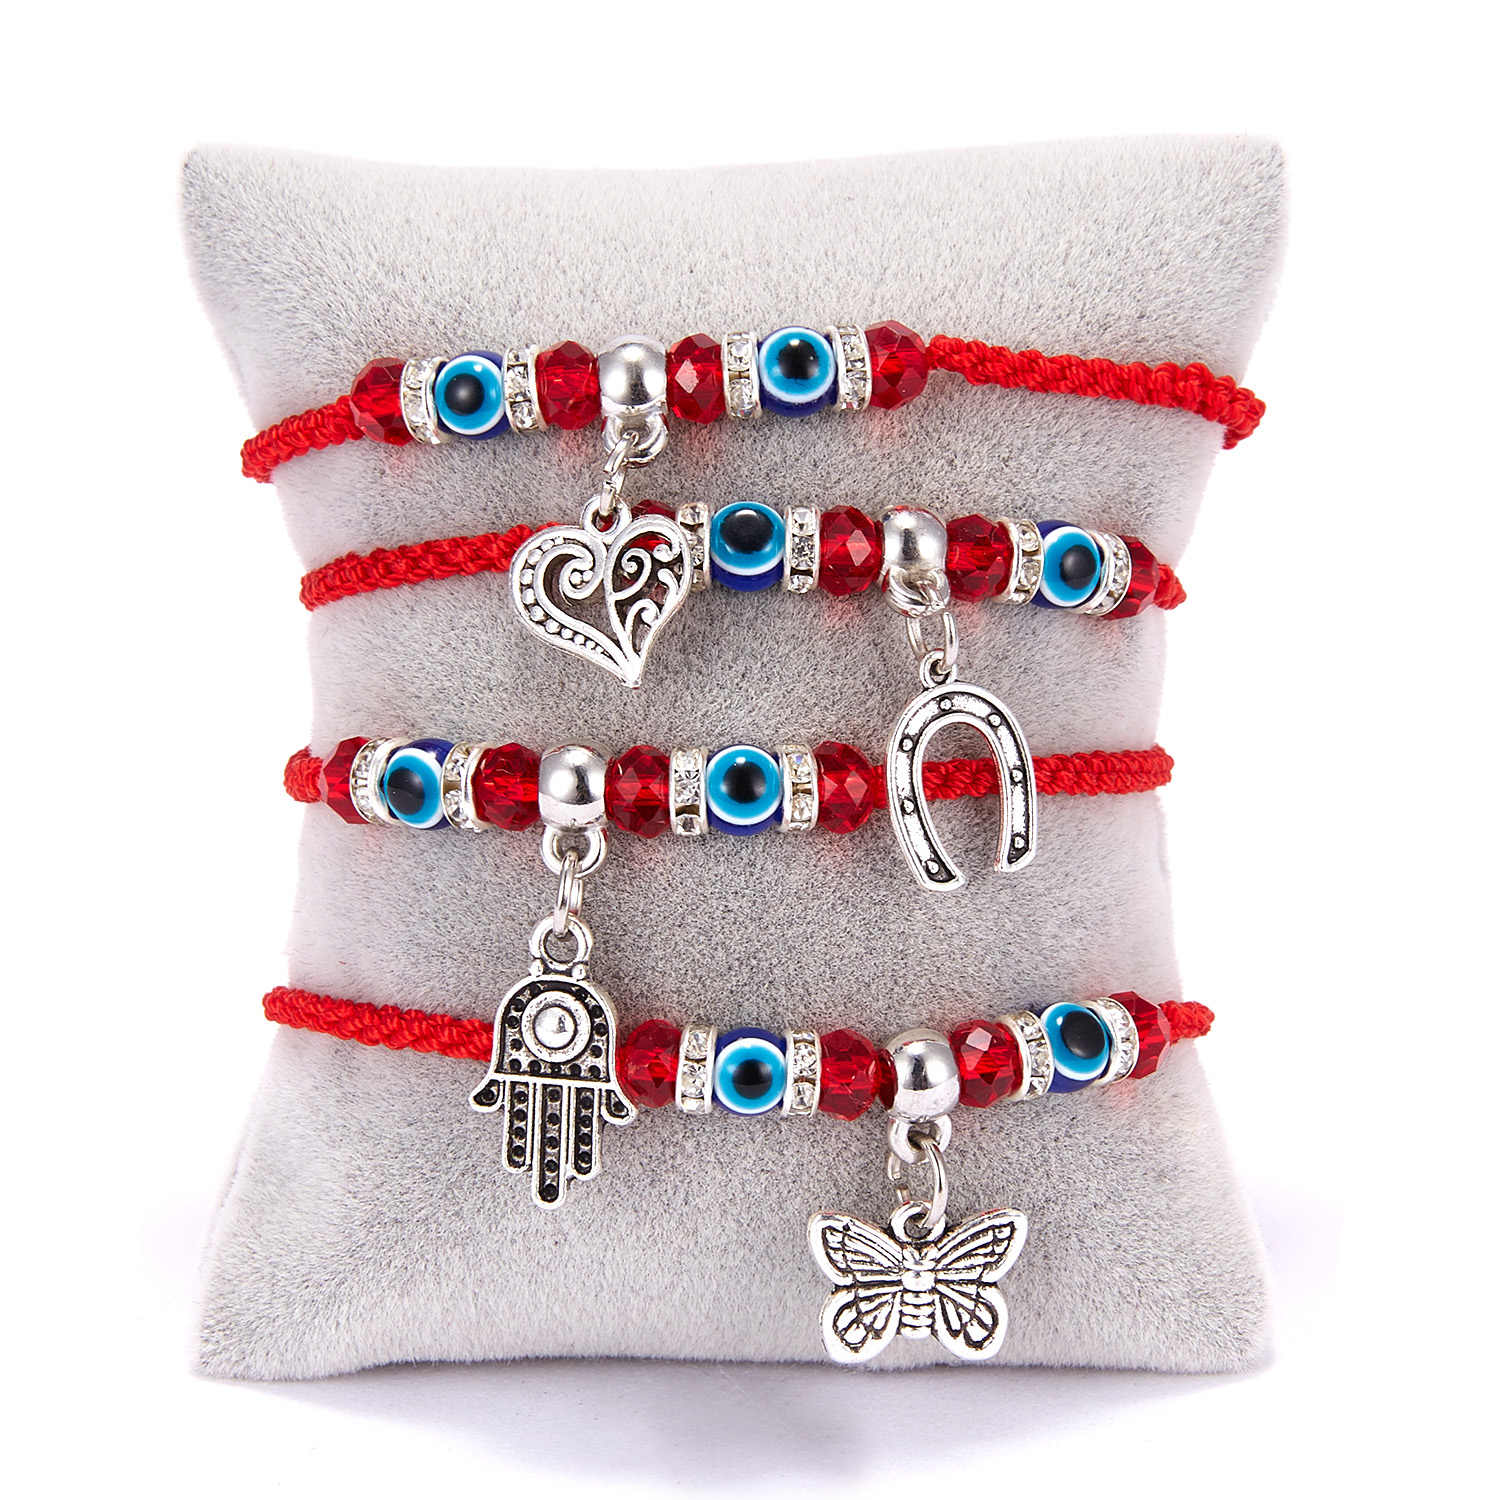 9Styles Braided Lucky Red String Hamsa Hand Charm Bracelet Blue Evil Eye Beads Bracelet Fashion Friendship Jewelry for Women Men